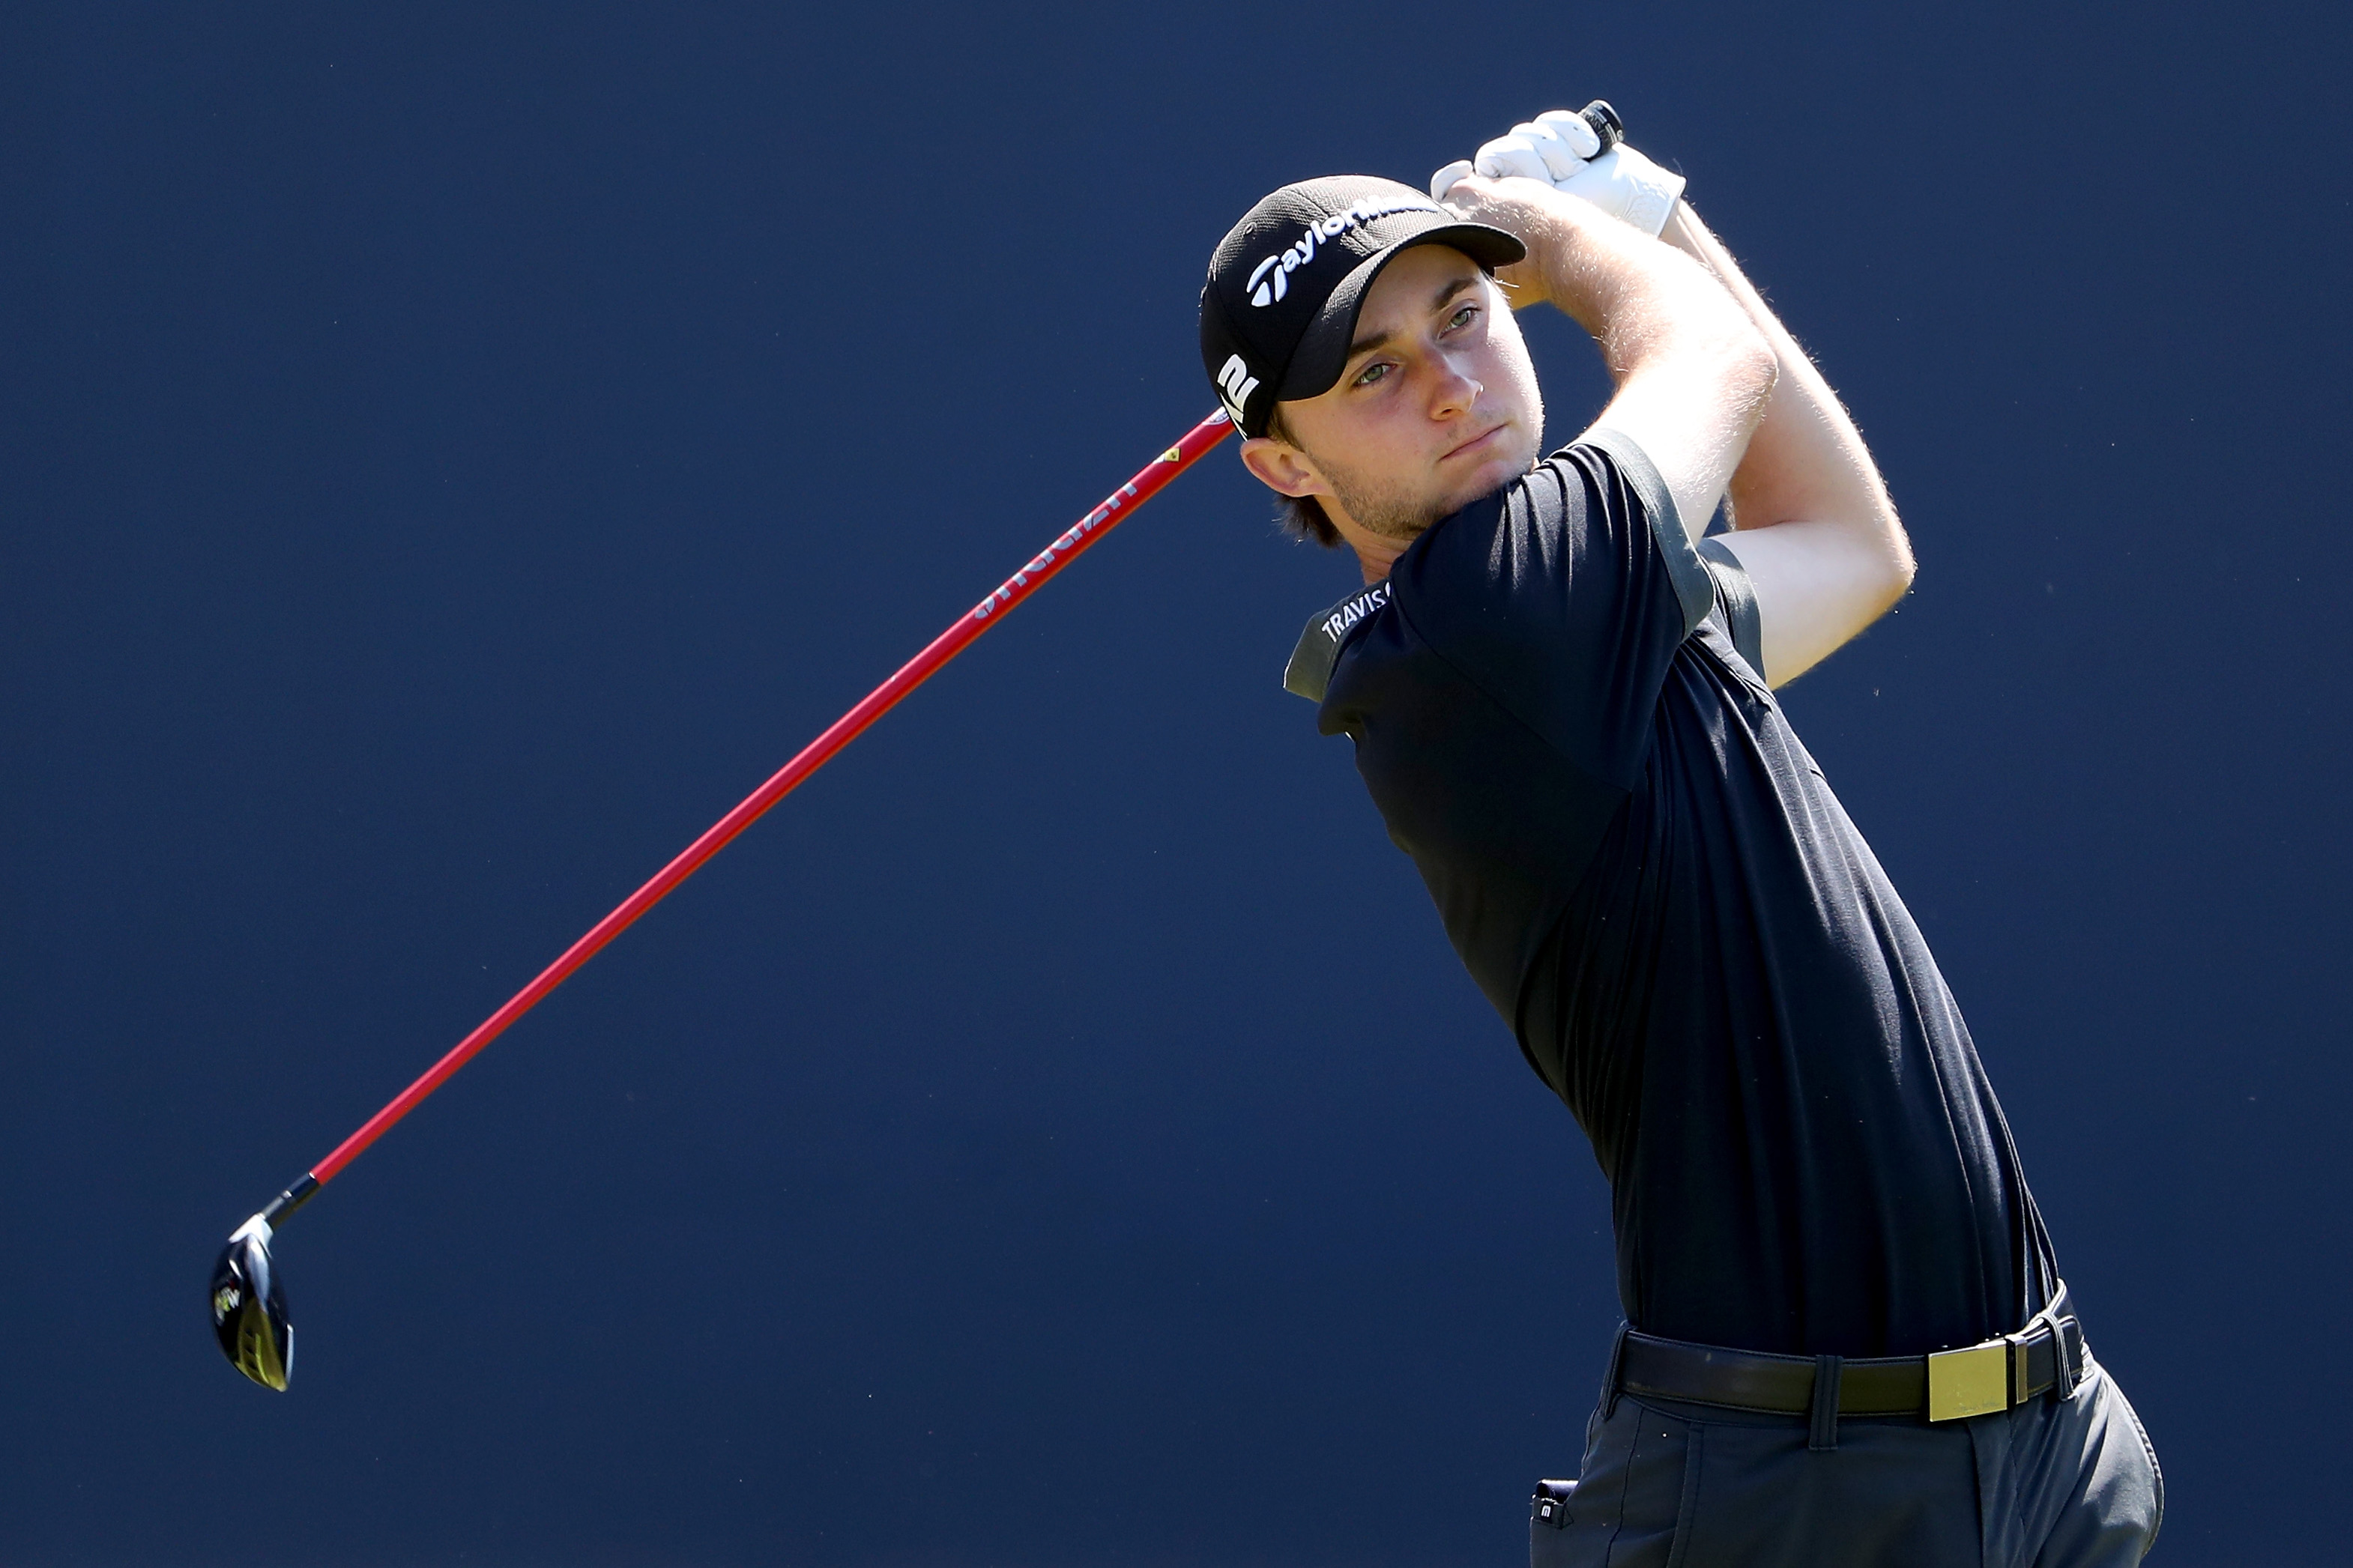 British Open: Jordan Spieth continues to lead, Rory McIlroy fades away